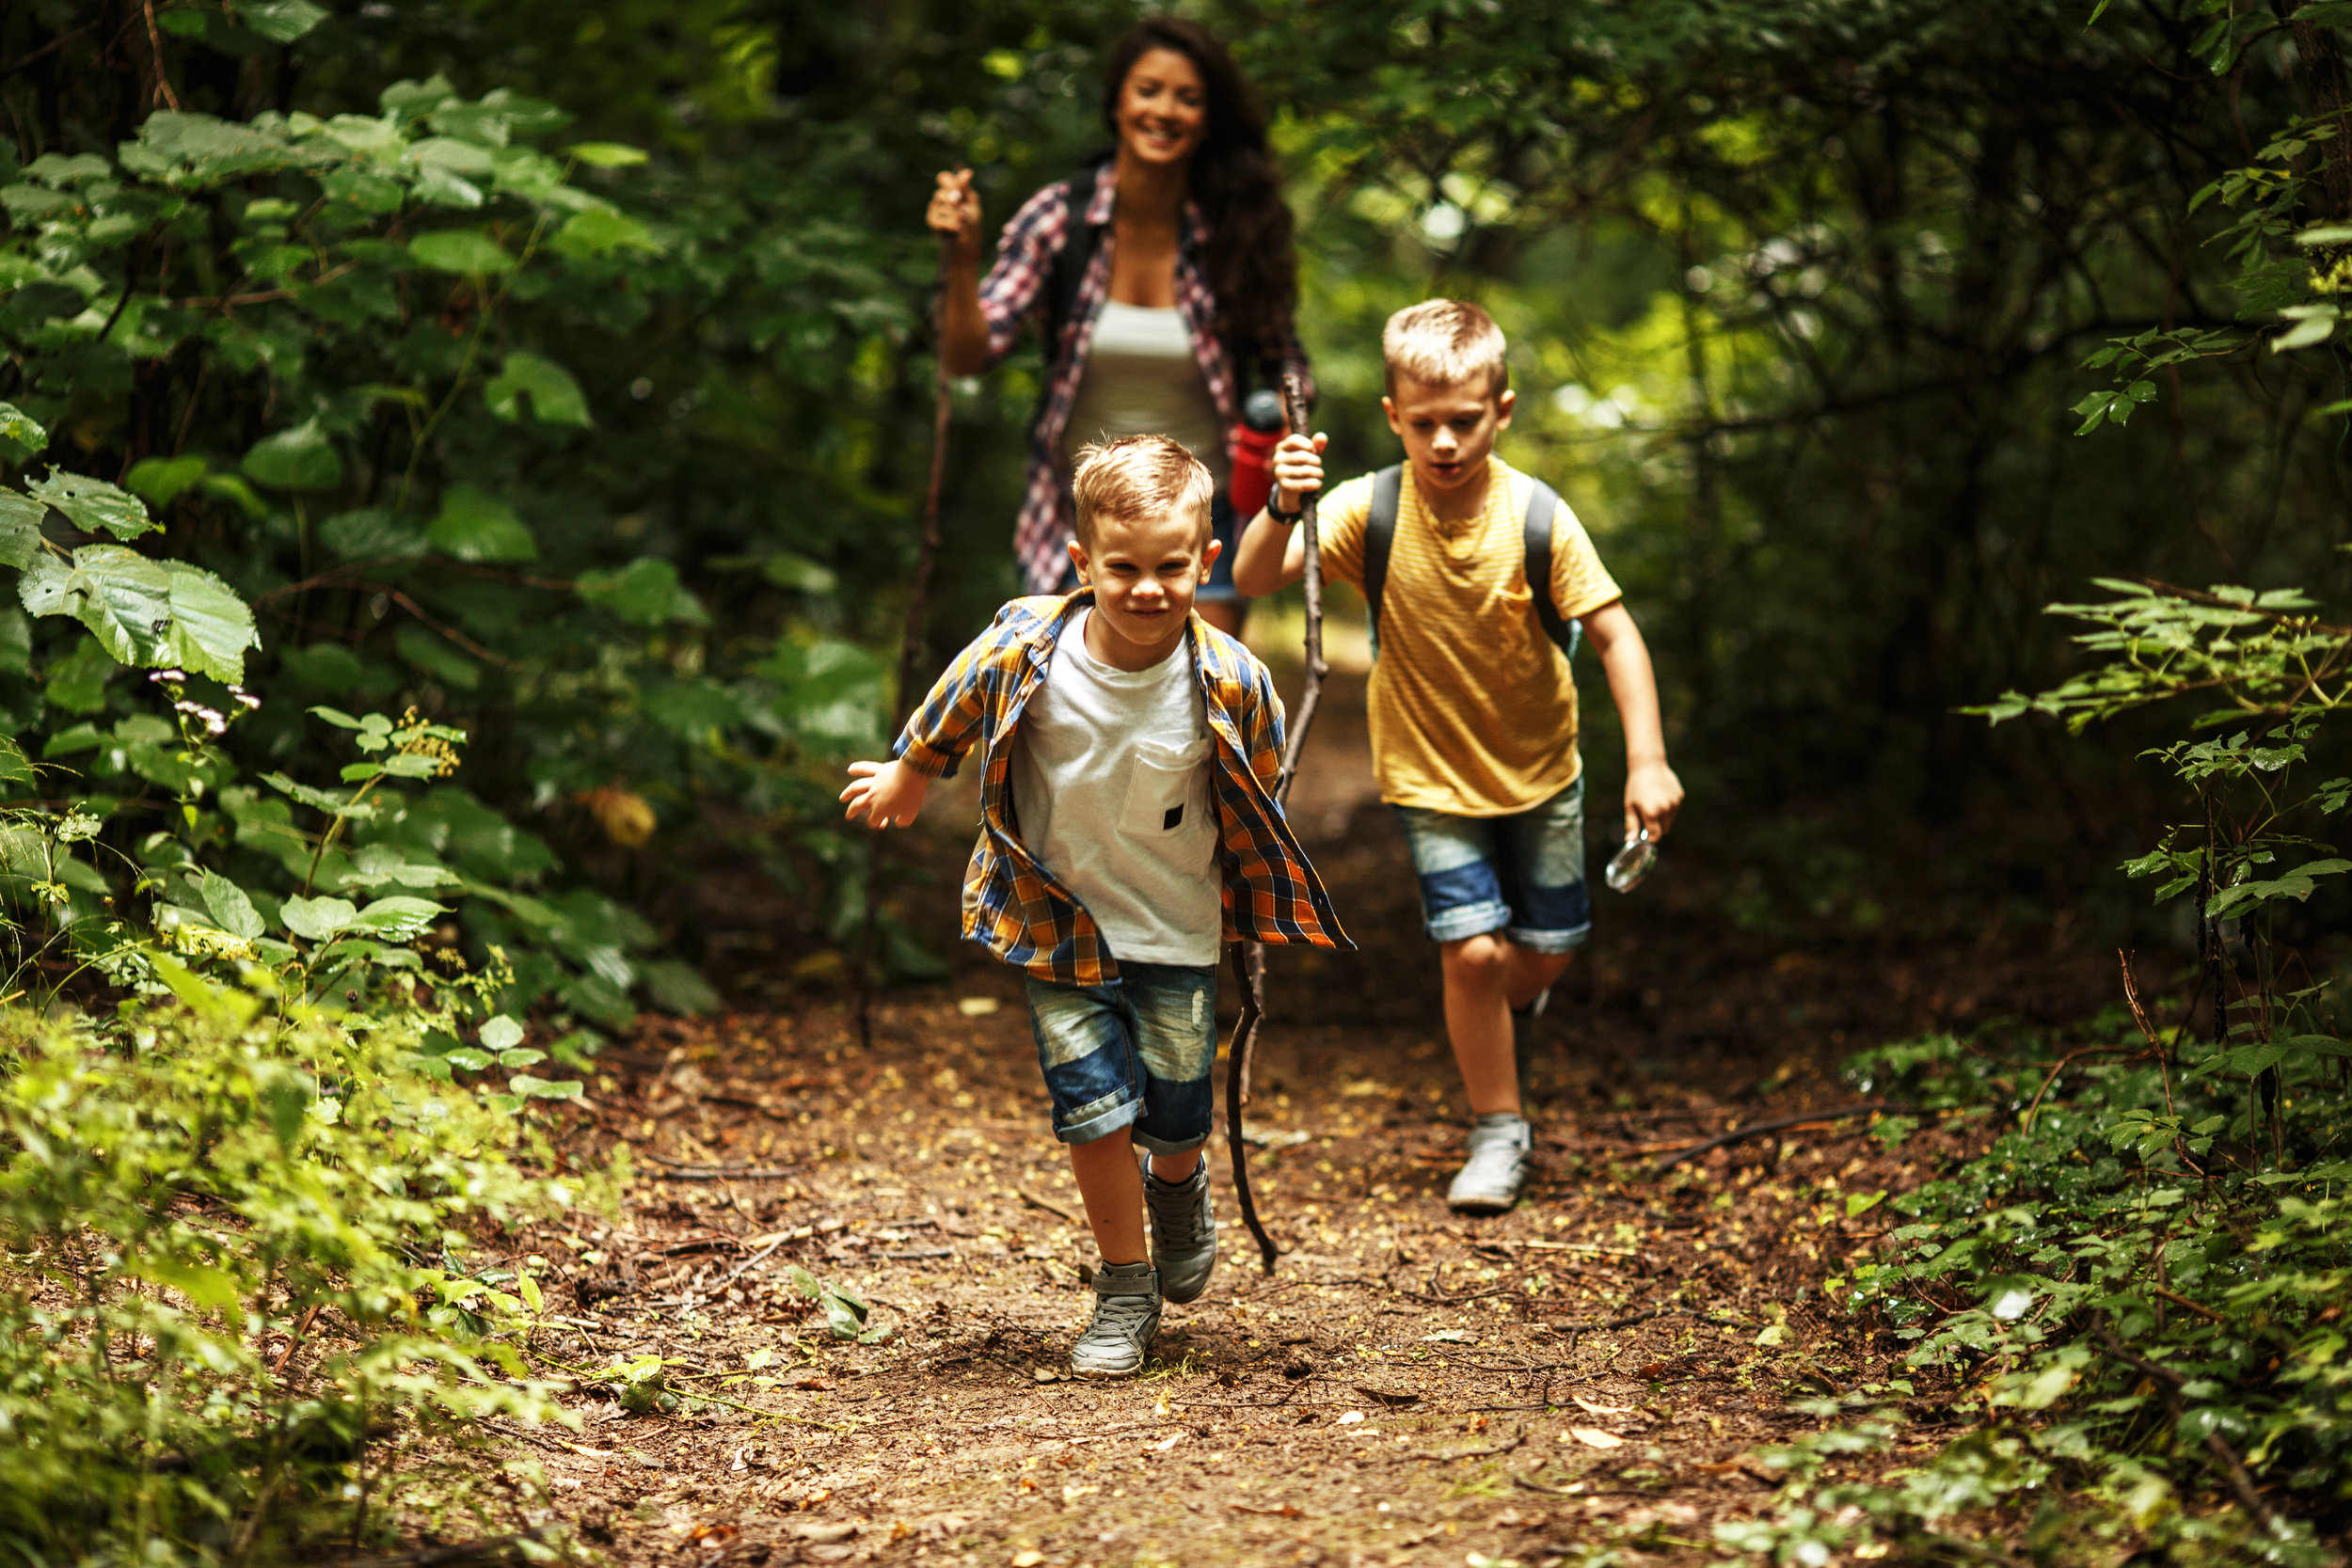 Hiking trails are easy and for the whole family